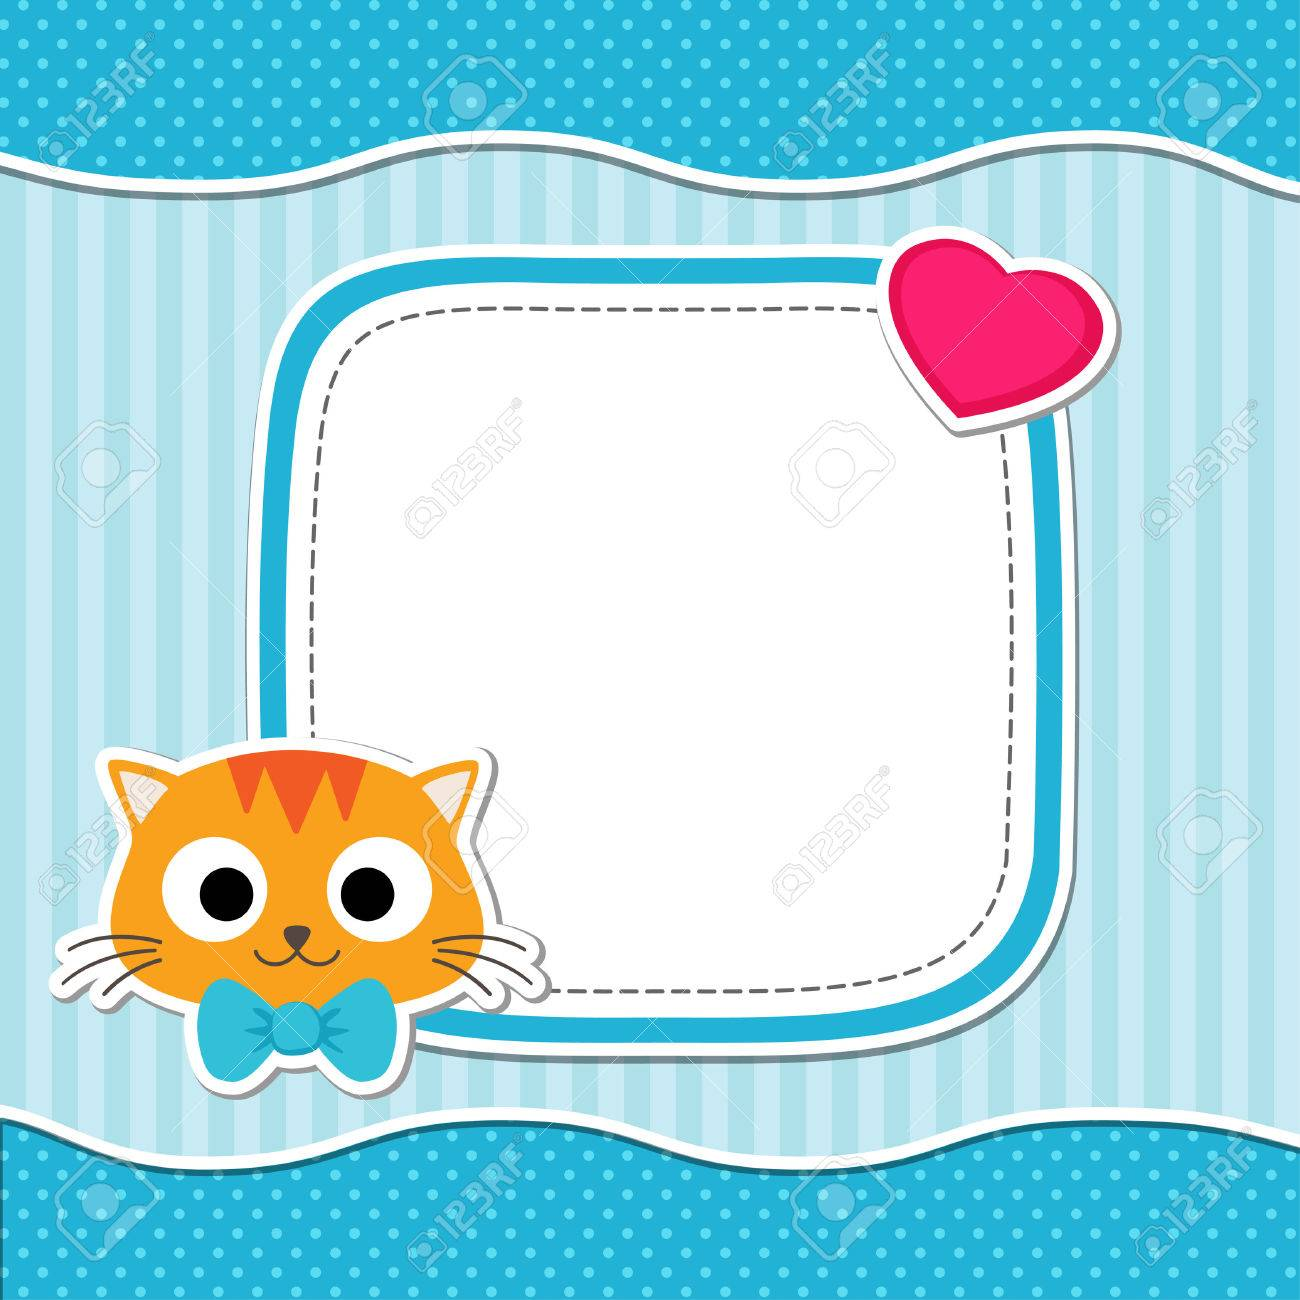 Illustration with cute cat and heart for boy. Vector template with place for your text. Card for baby shower, birth announcement or birthday invitation. - 43278817